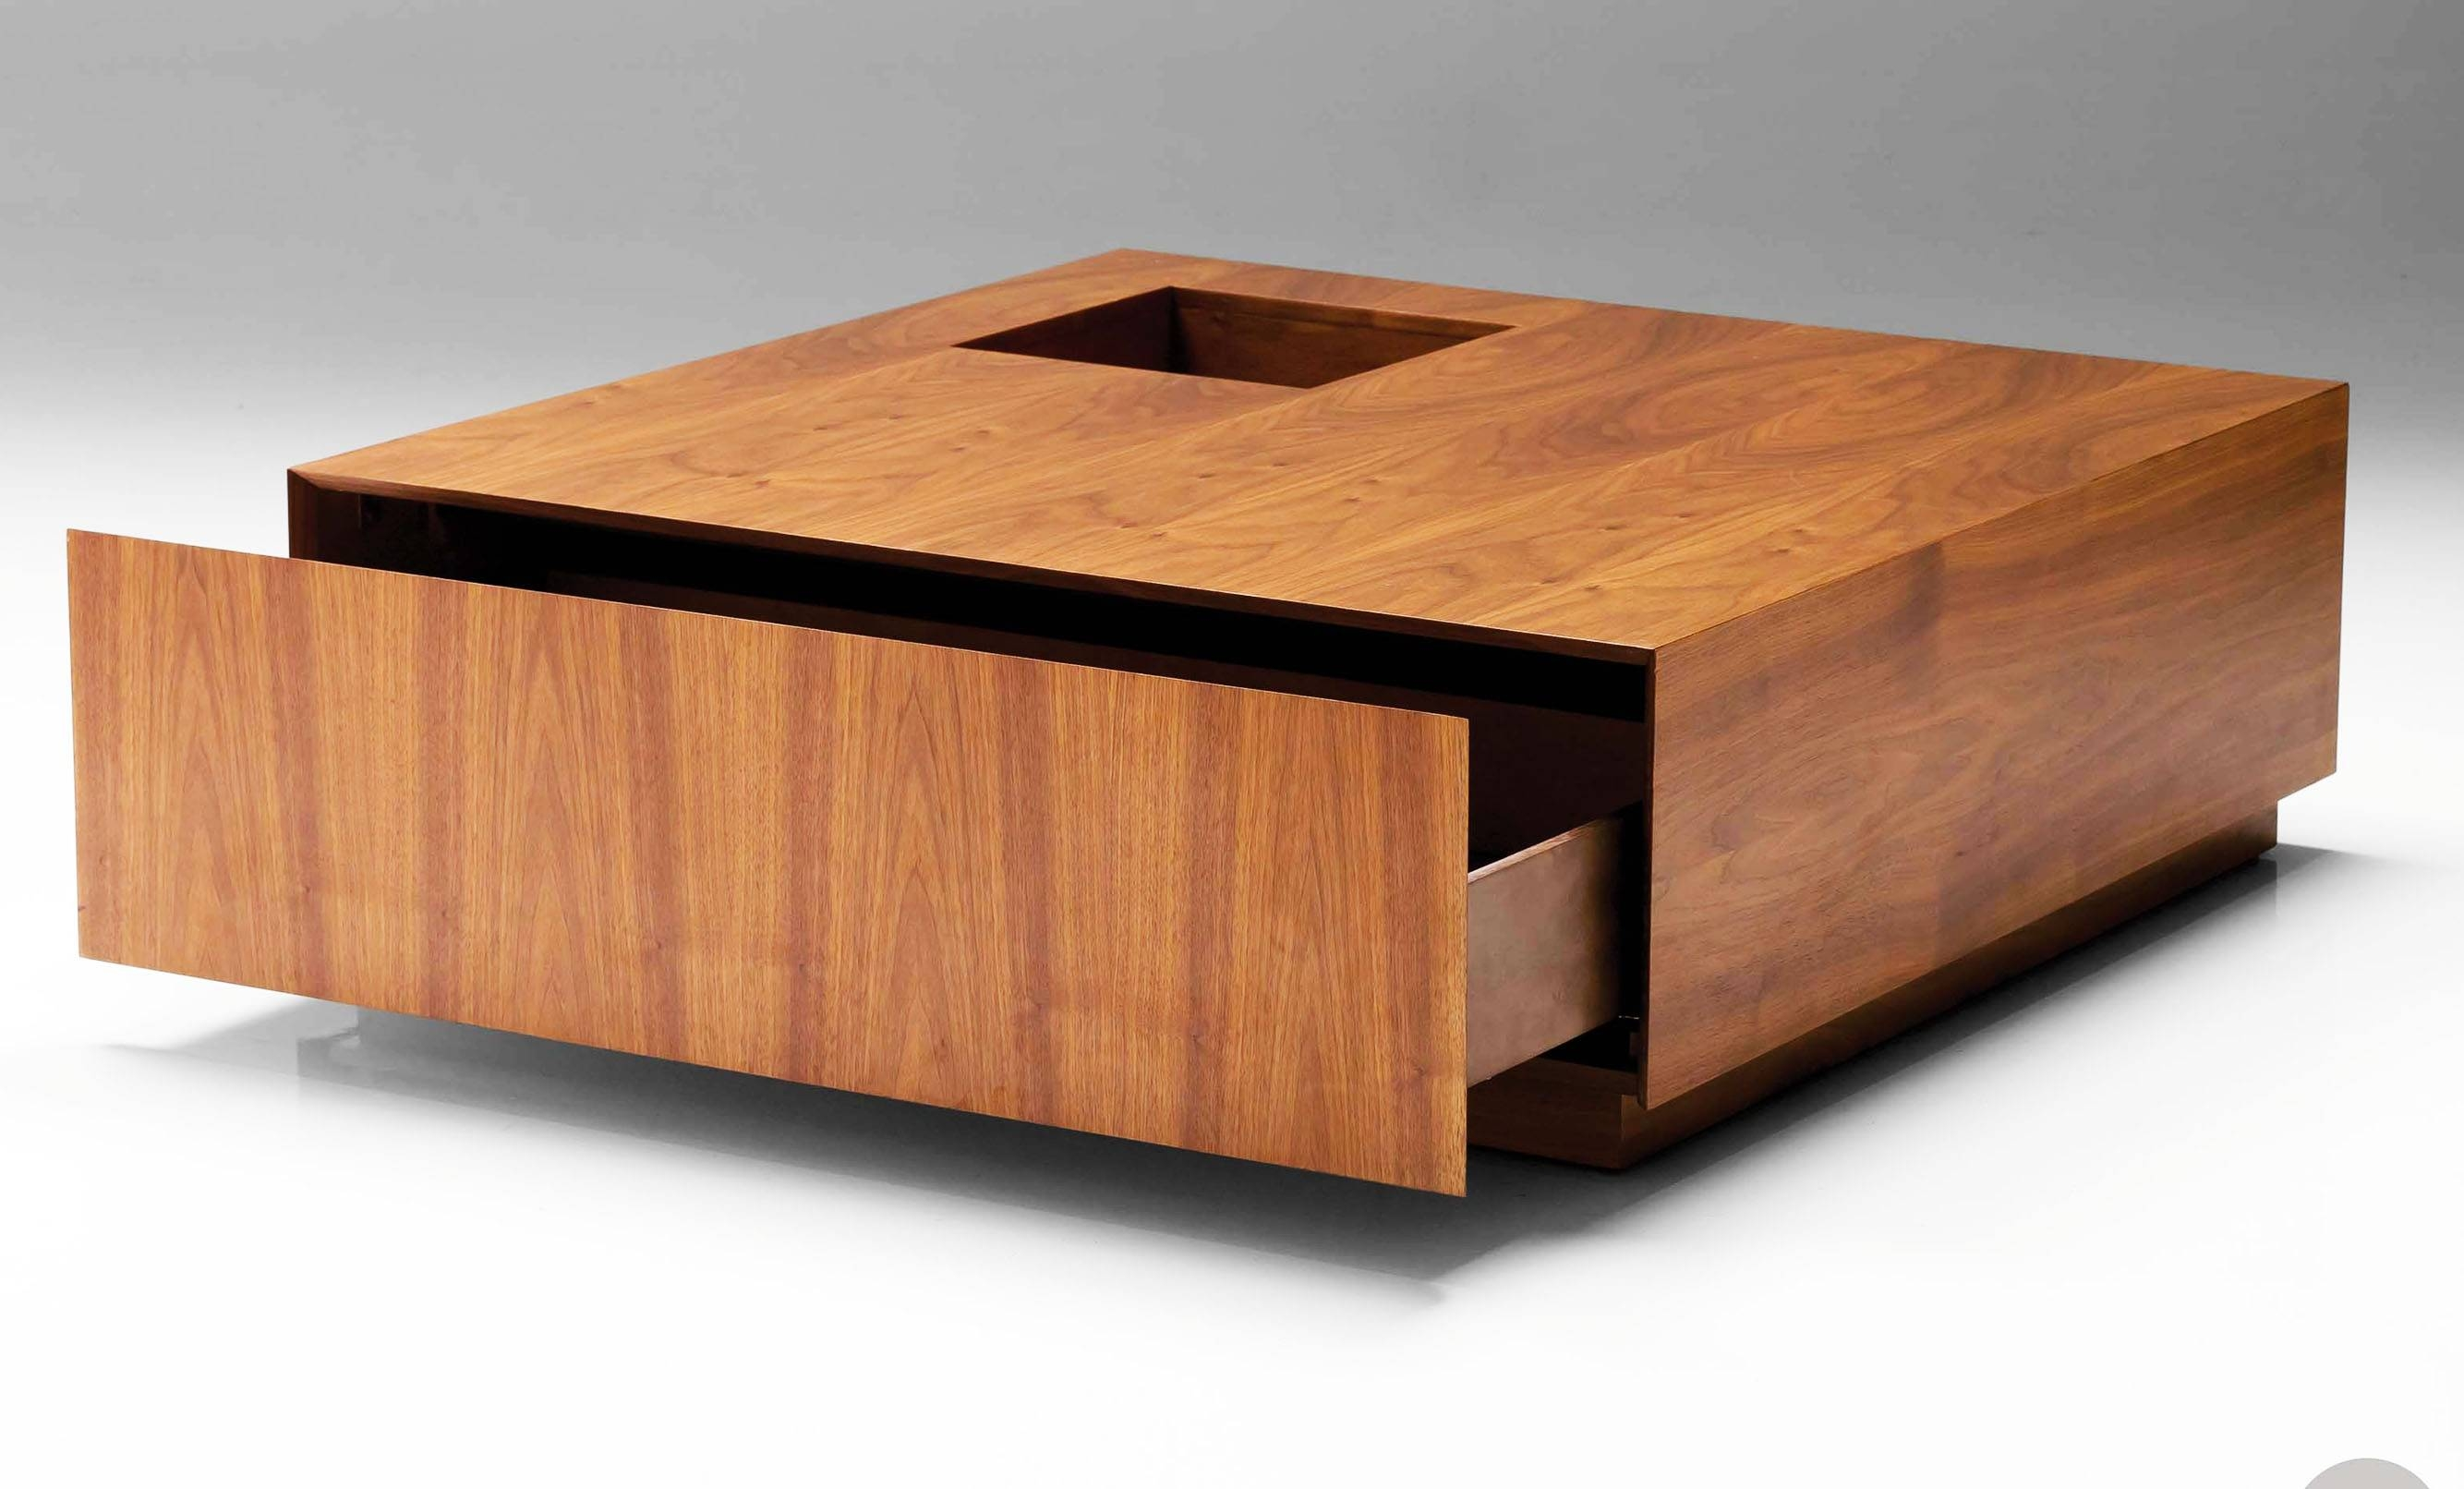 Large Square Coffee Tables | Homefurniture with regard to Large Low Square Coffee Tables (Image 17 of 30)